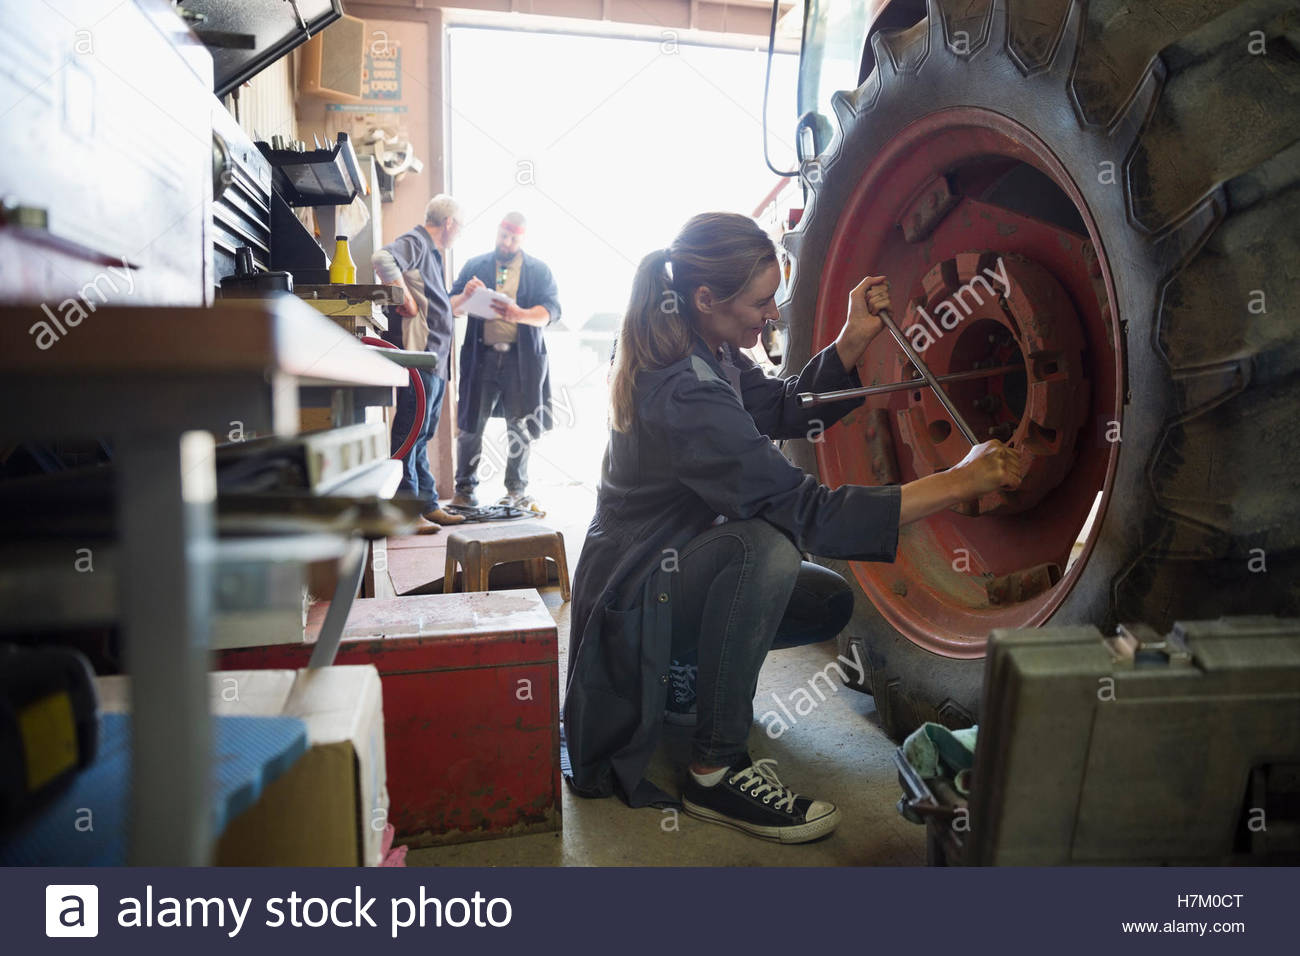 Female mechanic using lug wrench on tractor tire in workshop - Stock Image